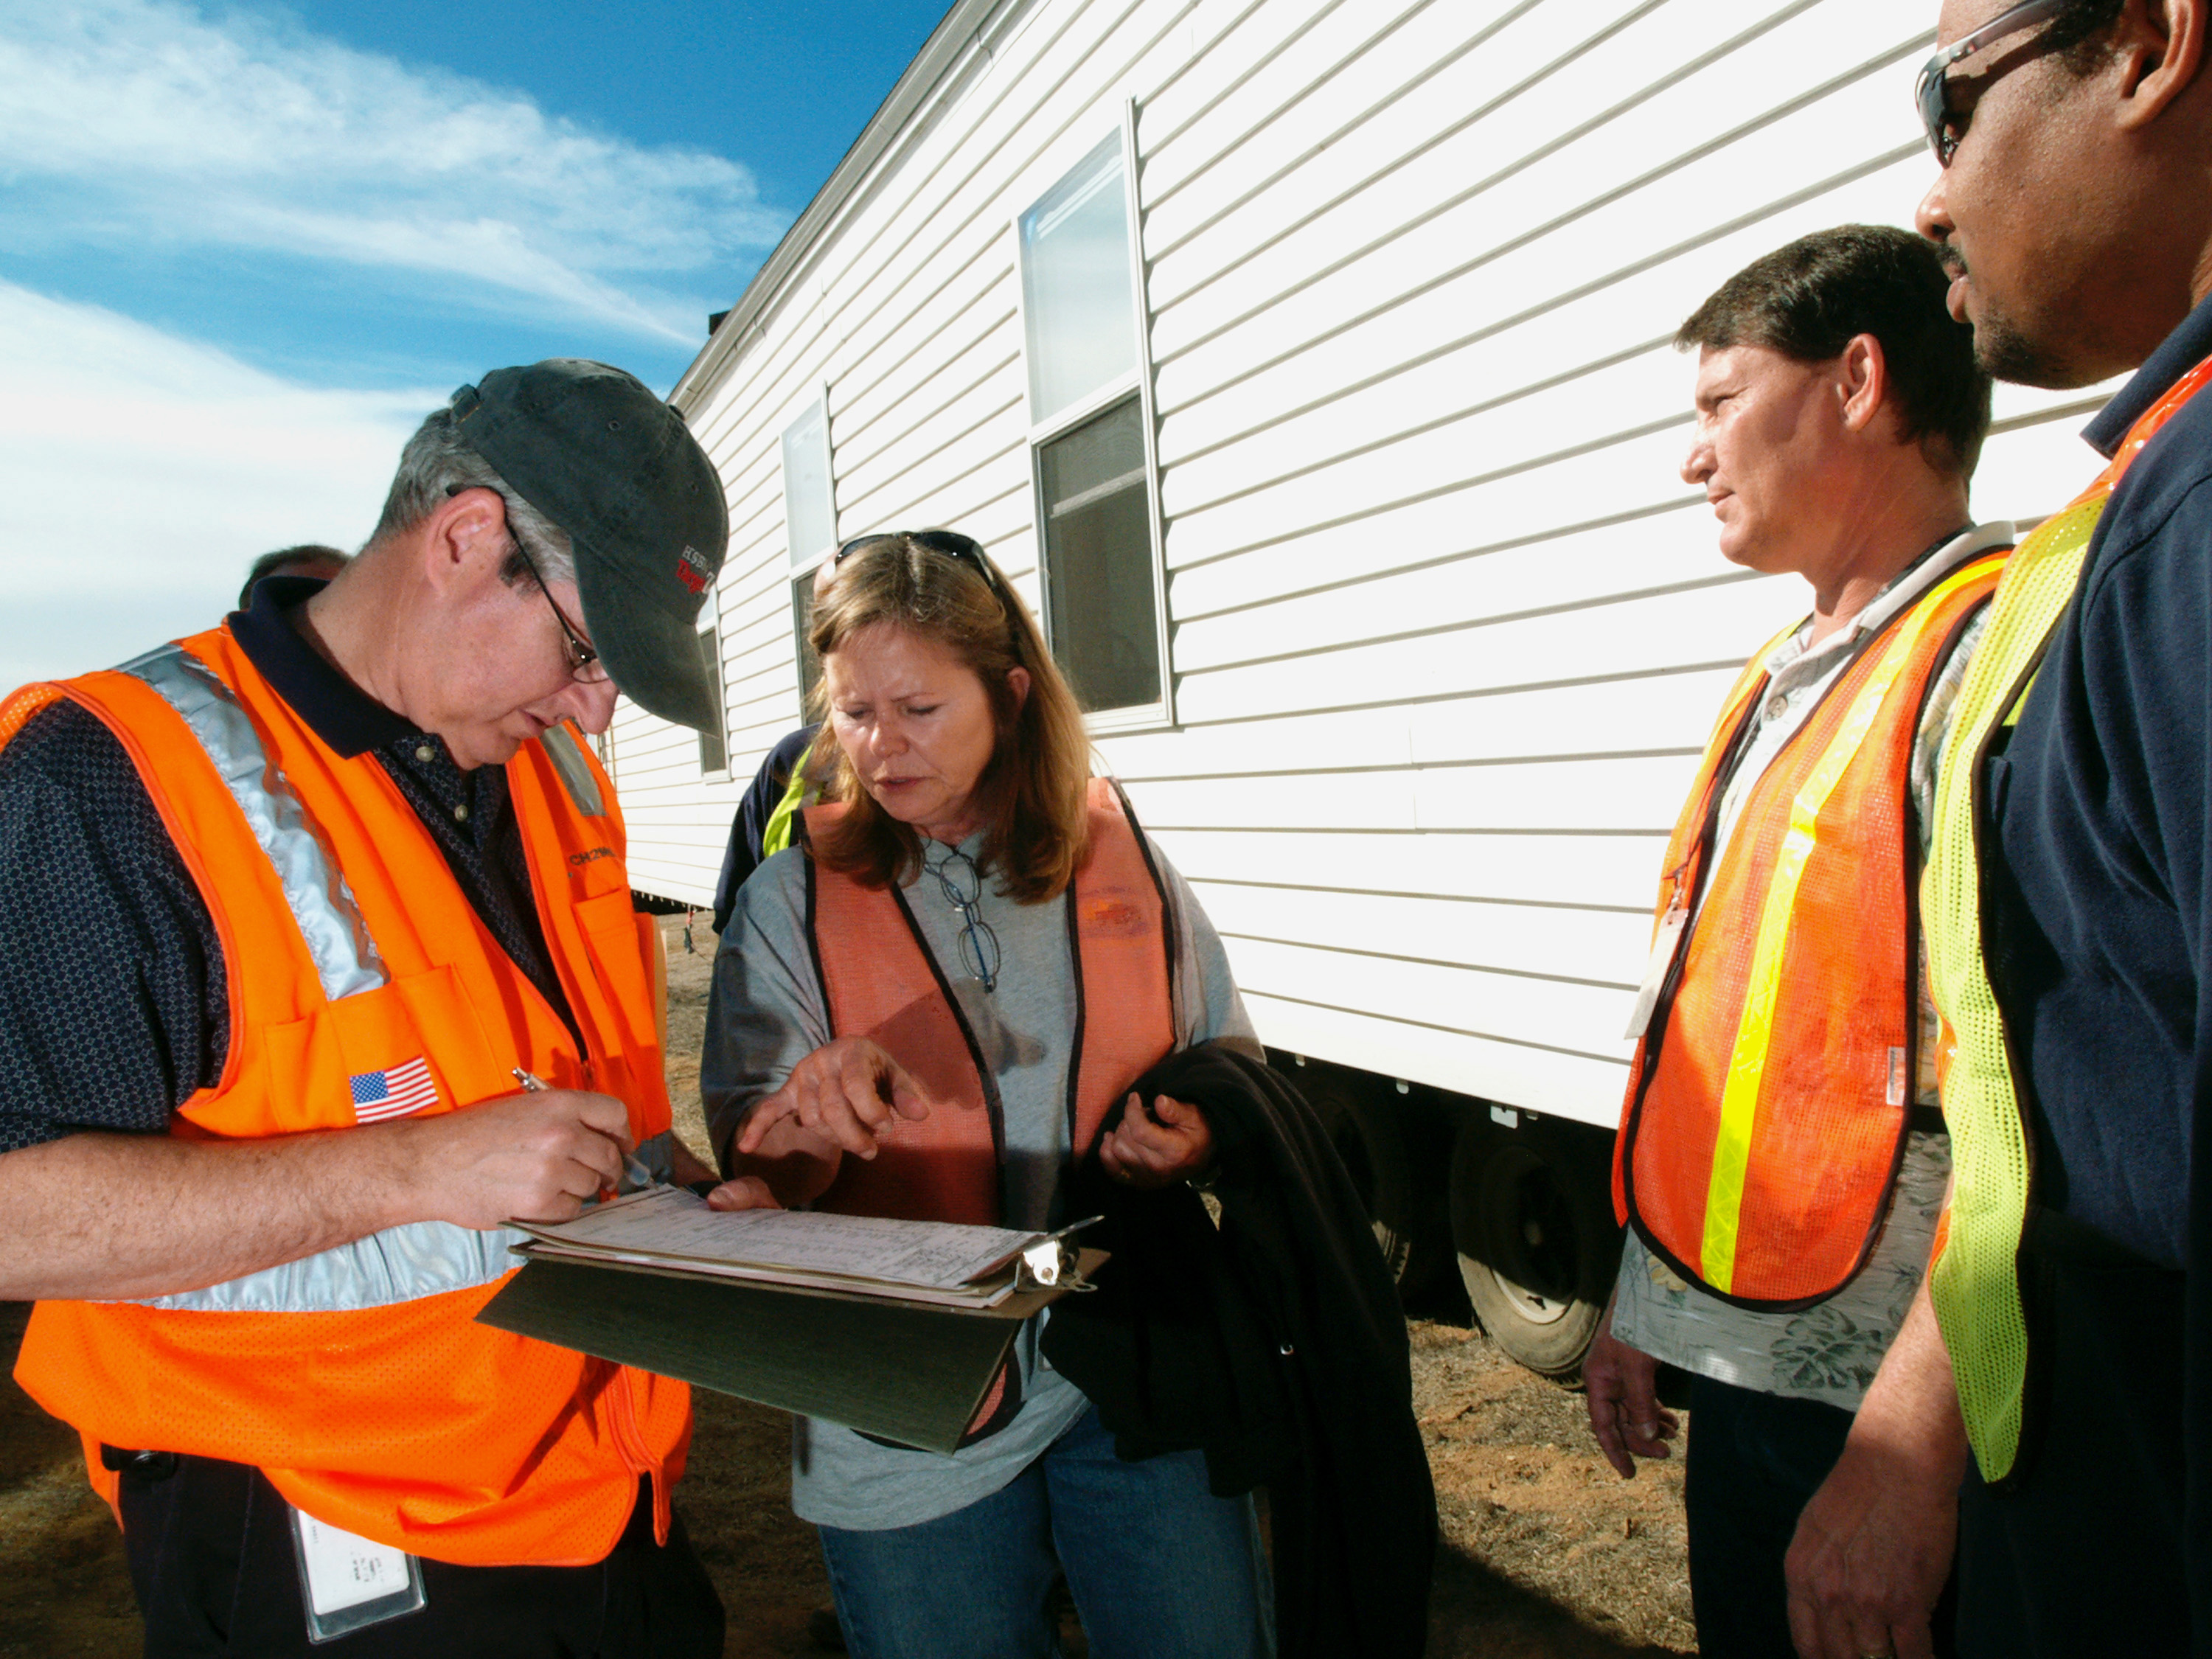 FEMA_-_33705_-_FEMA_and_contractors_meet_about_mobile_homes_in_California.jpg